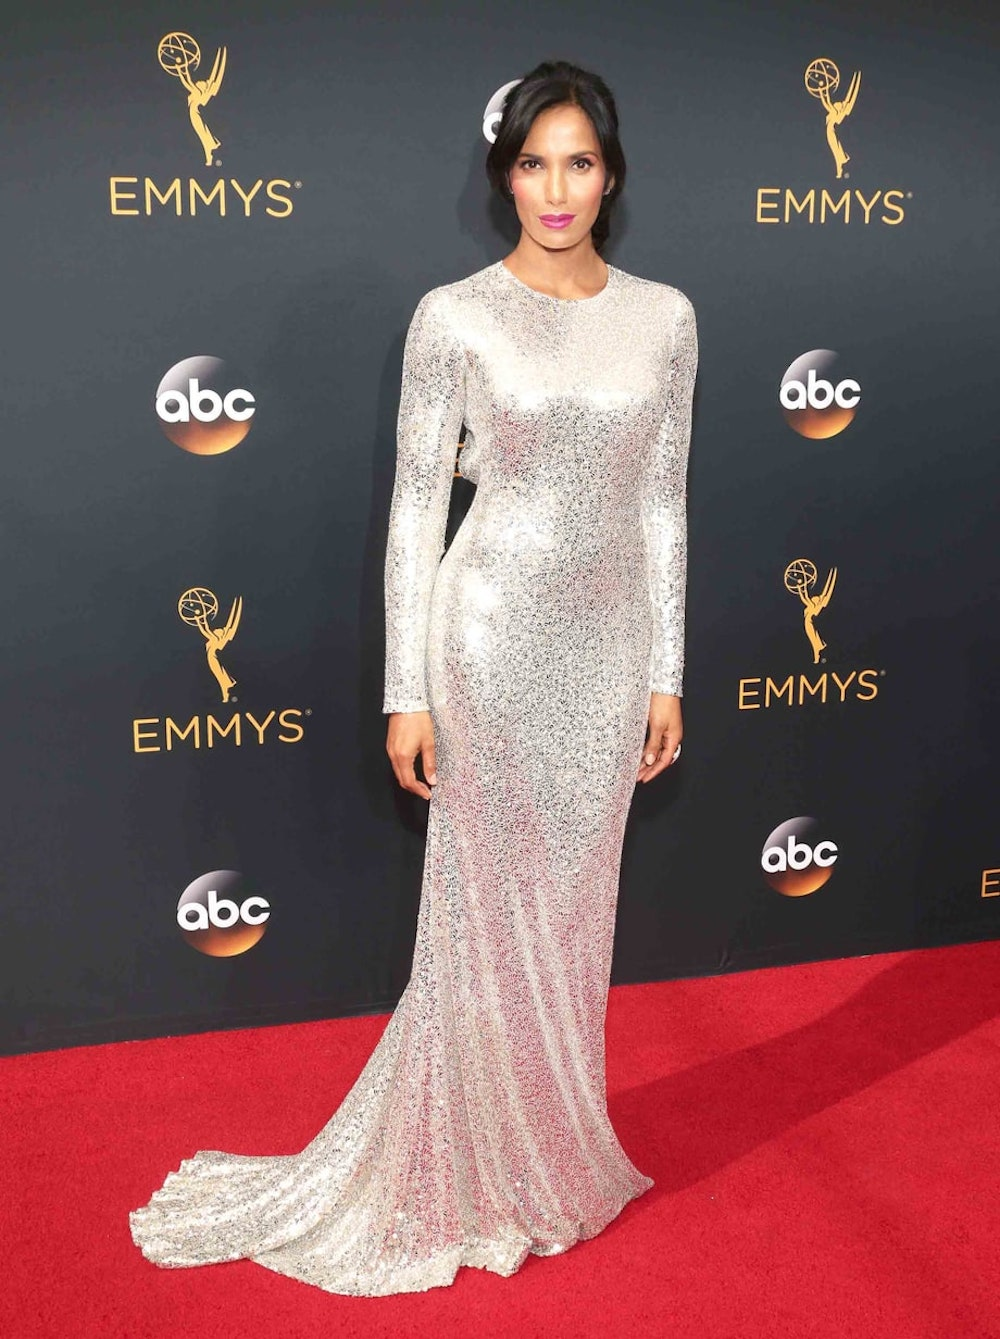 Padma Lakshmi in Naeem Khan at the 2016 Emmy Awards. Image courtesy of Tod Williamson/Getty.